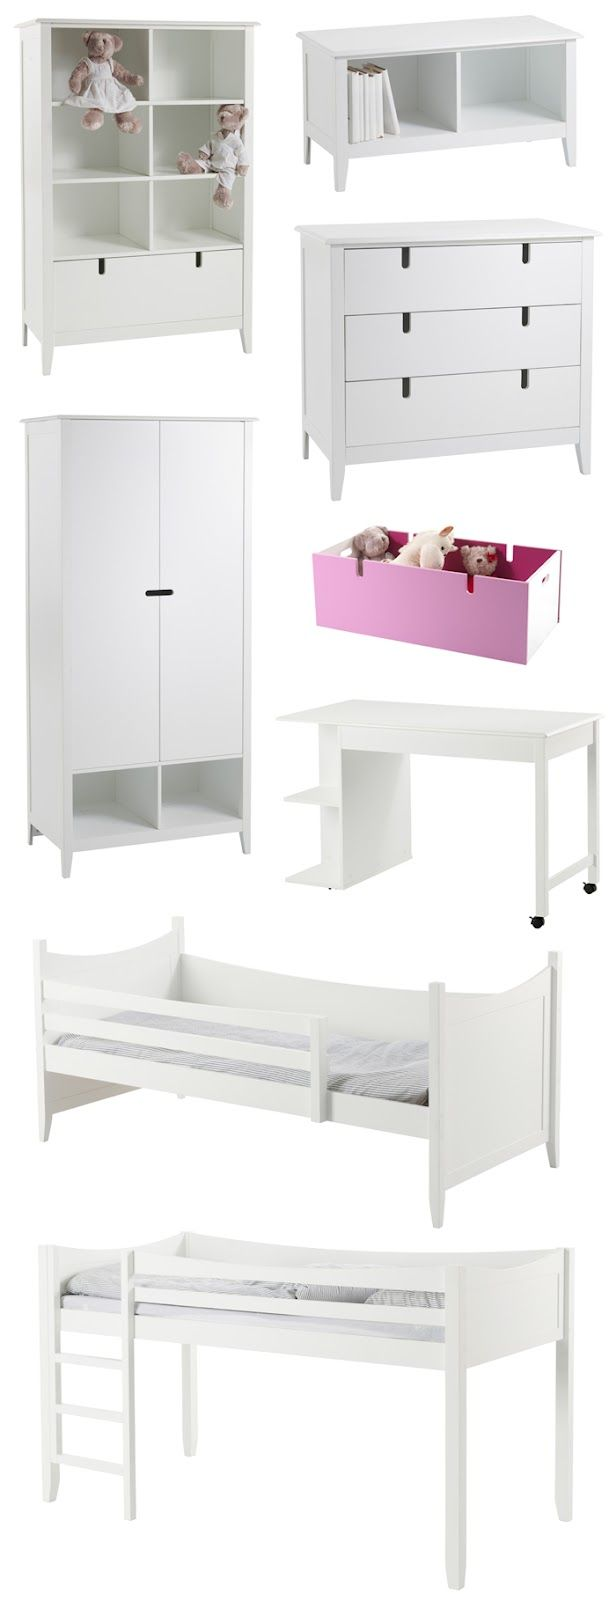 lovely coordinating bedroom furniture...